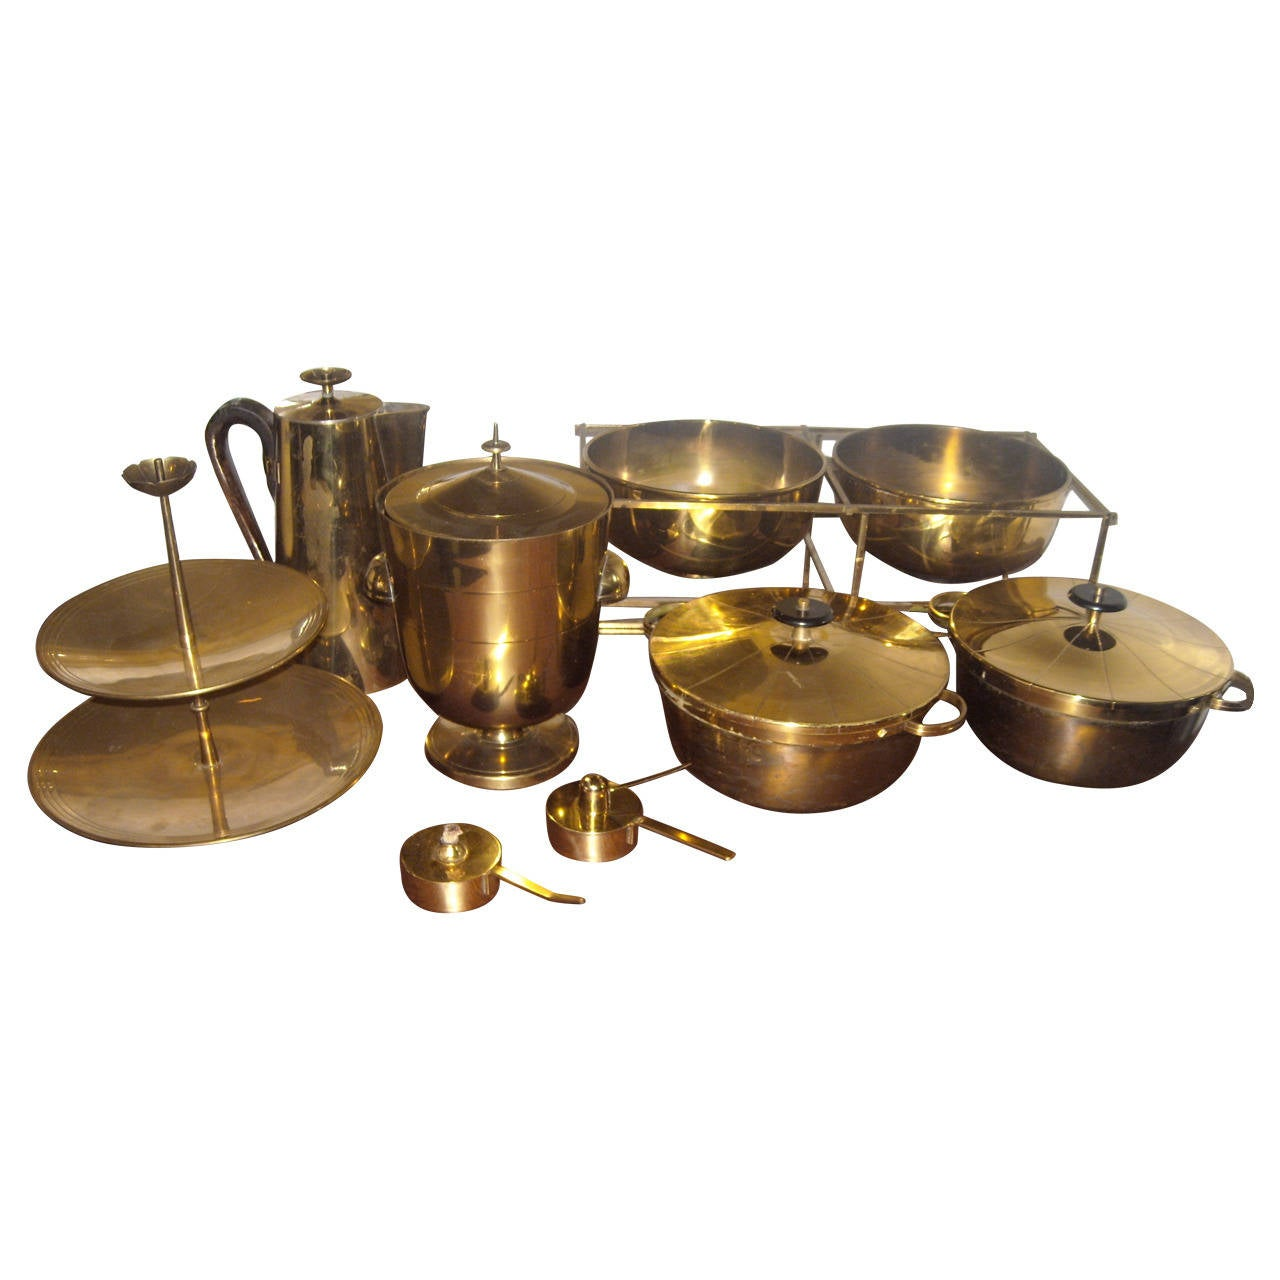 Large Set of Tommi Parzinger Dining Ware for Dorlyn Silversmith, in Brass For Sale